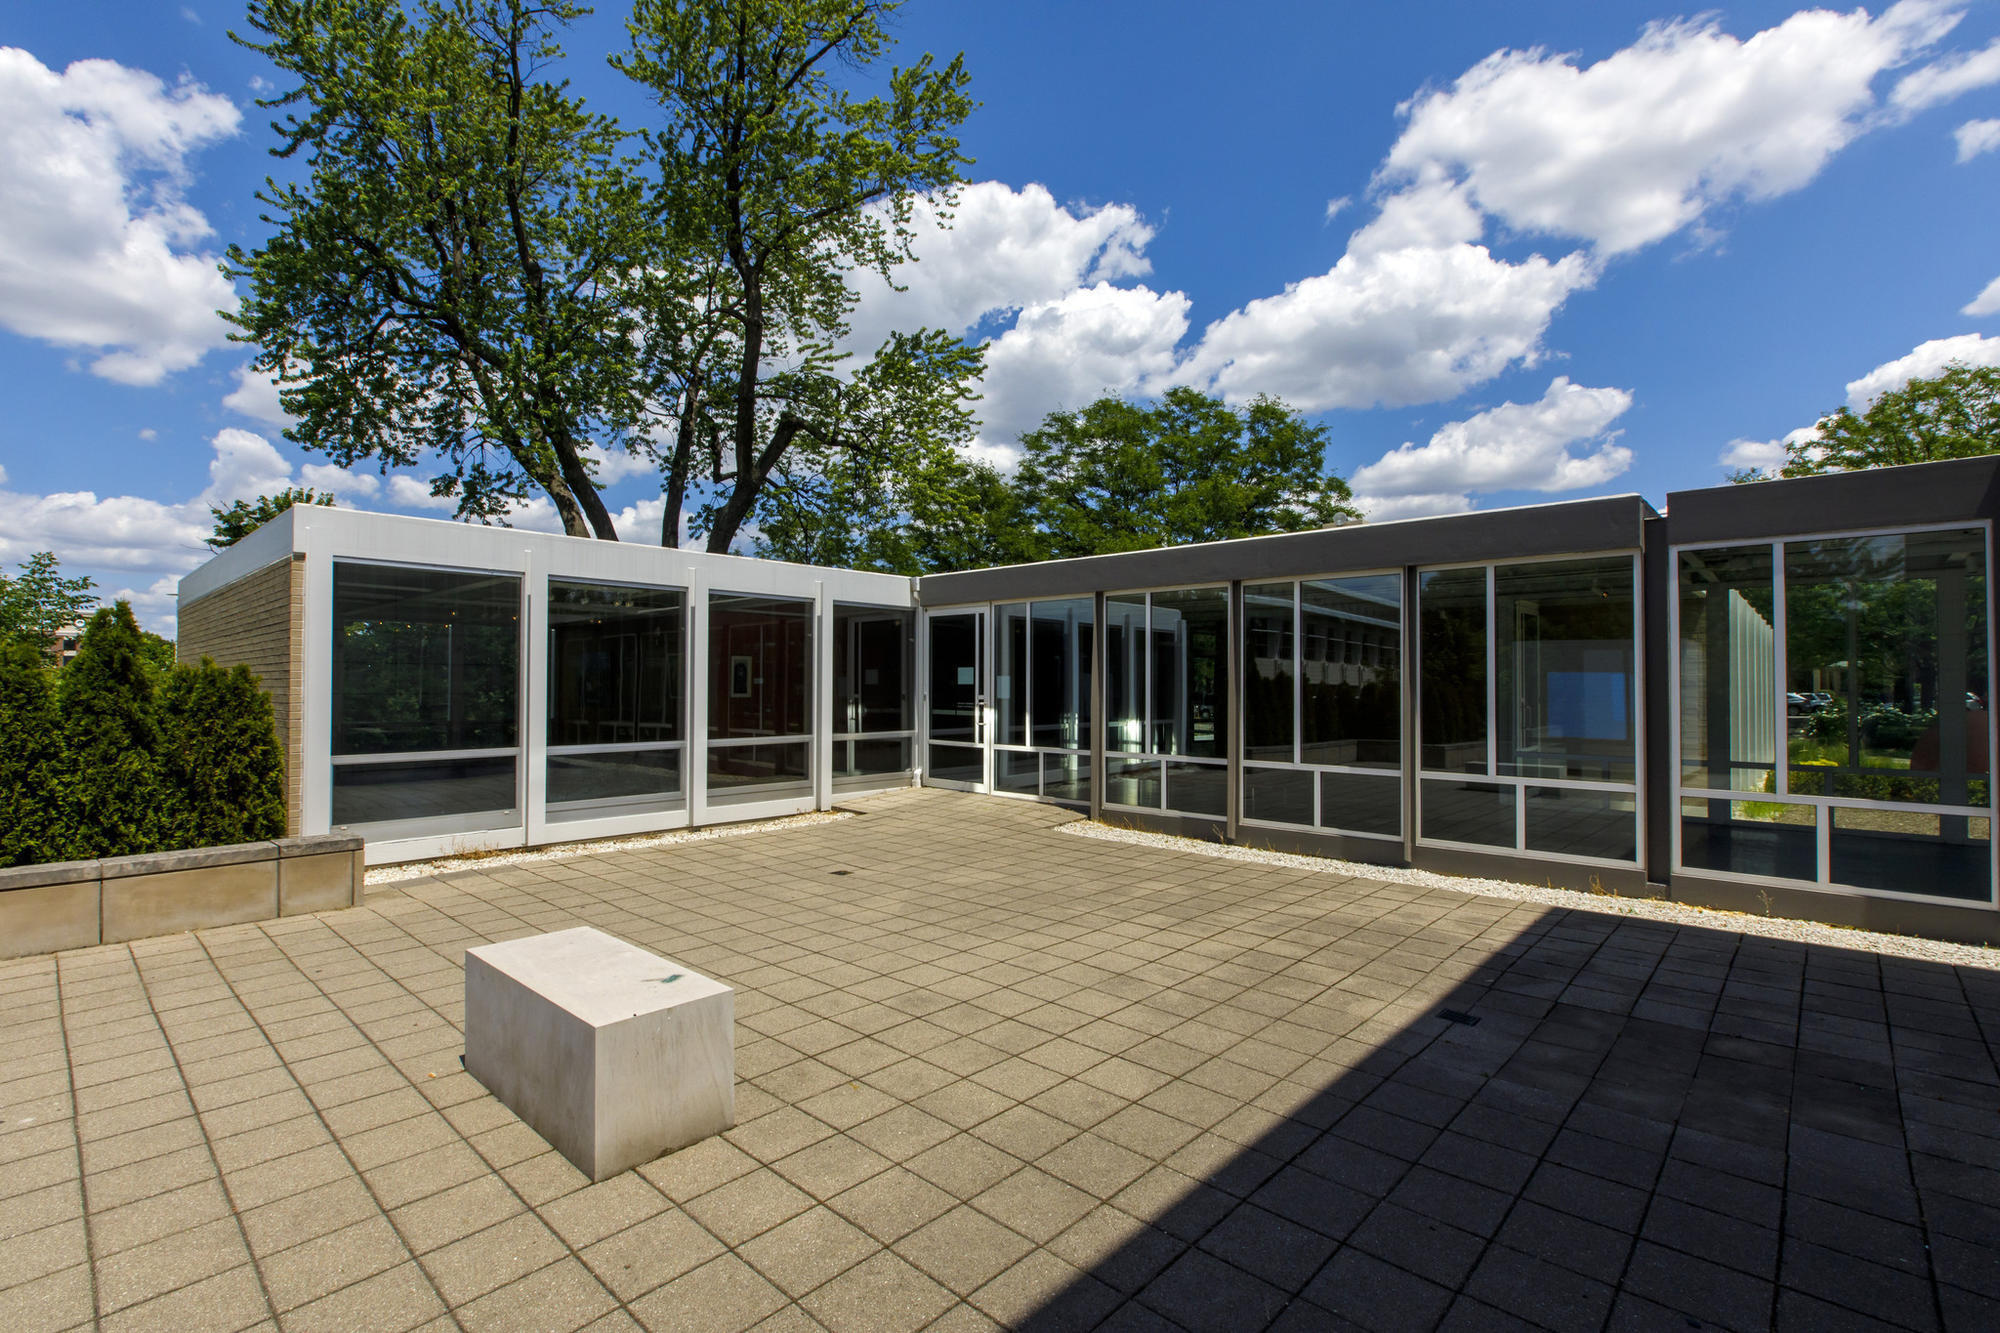 A Less Is More Restoration Of A Mies House Expands Our View Of A